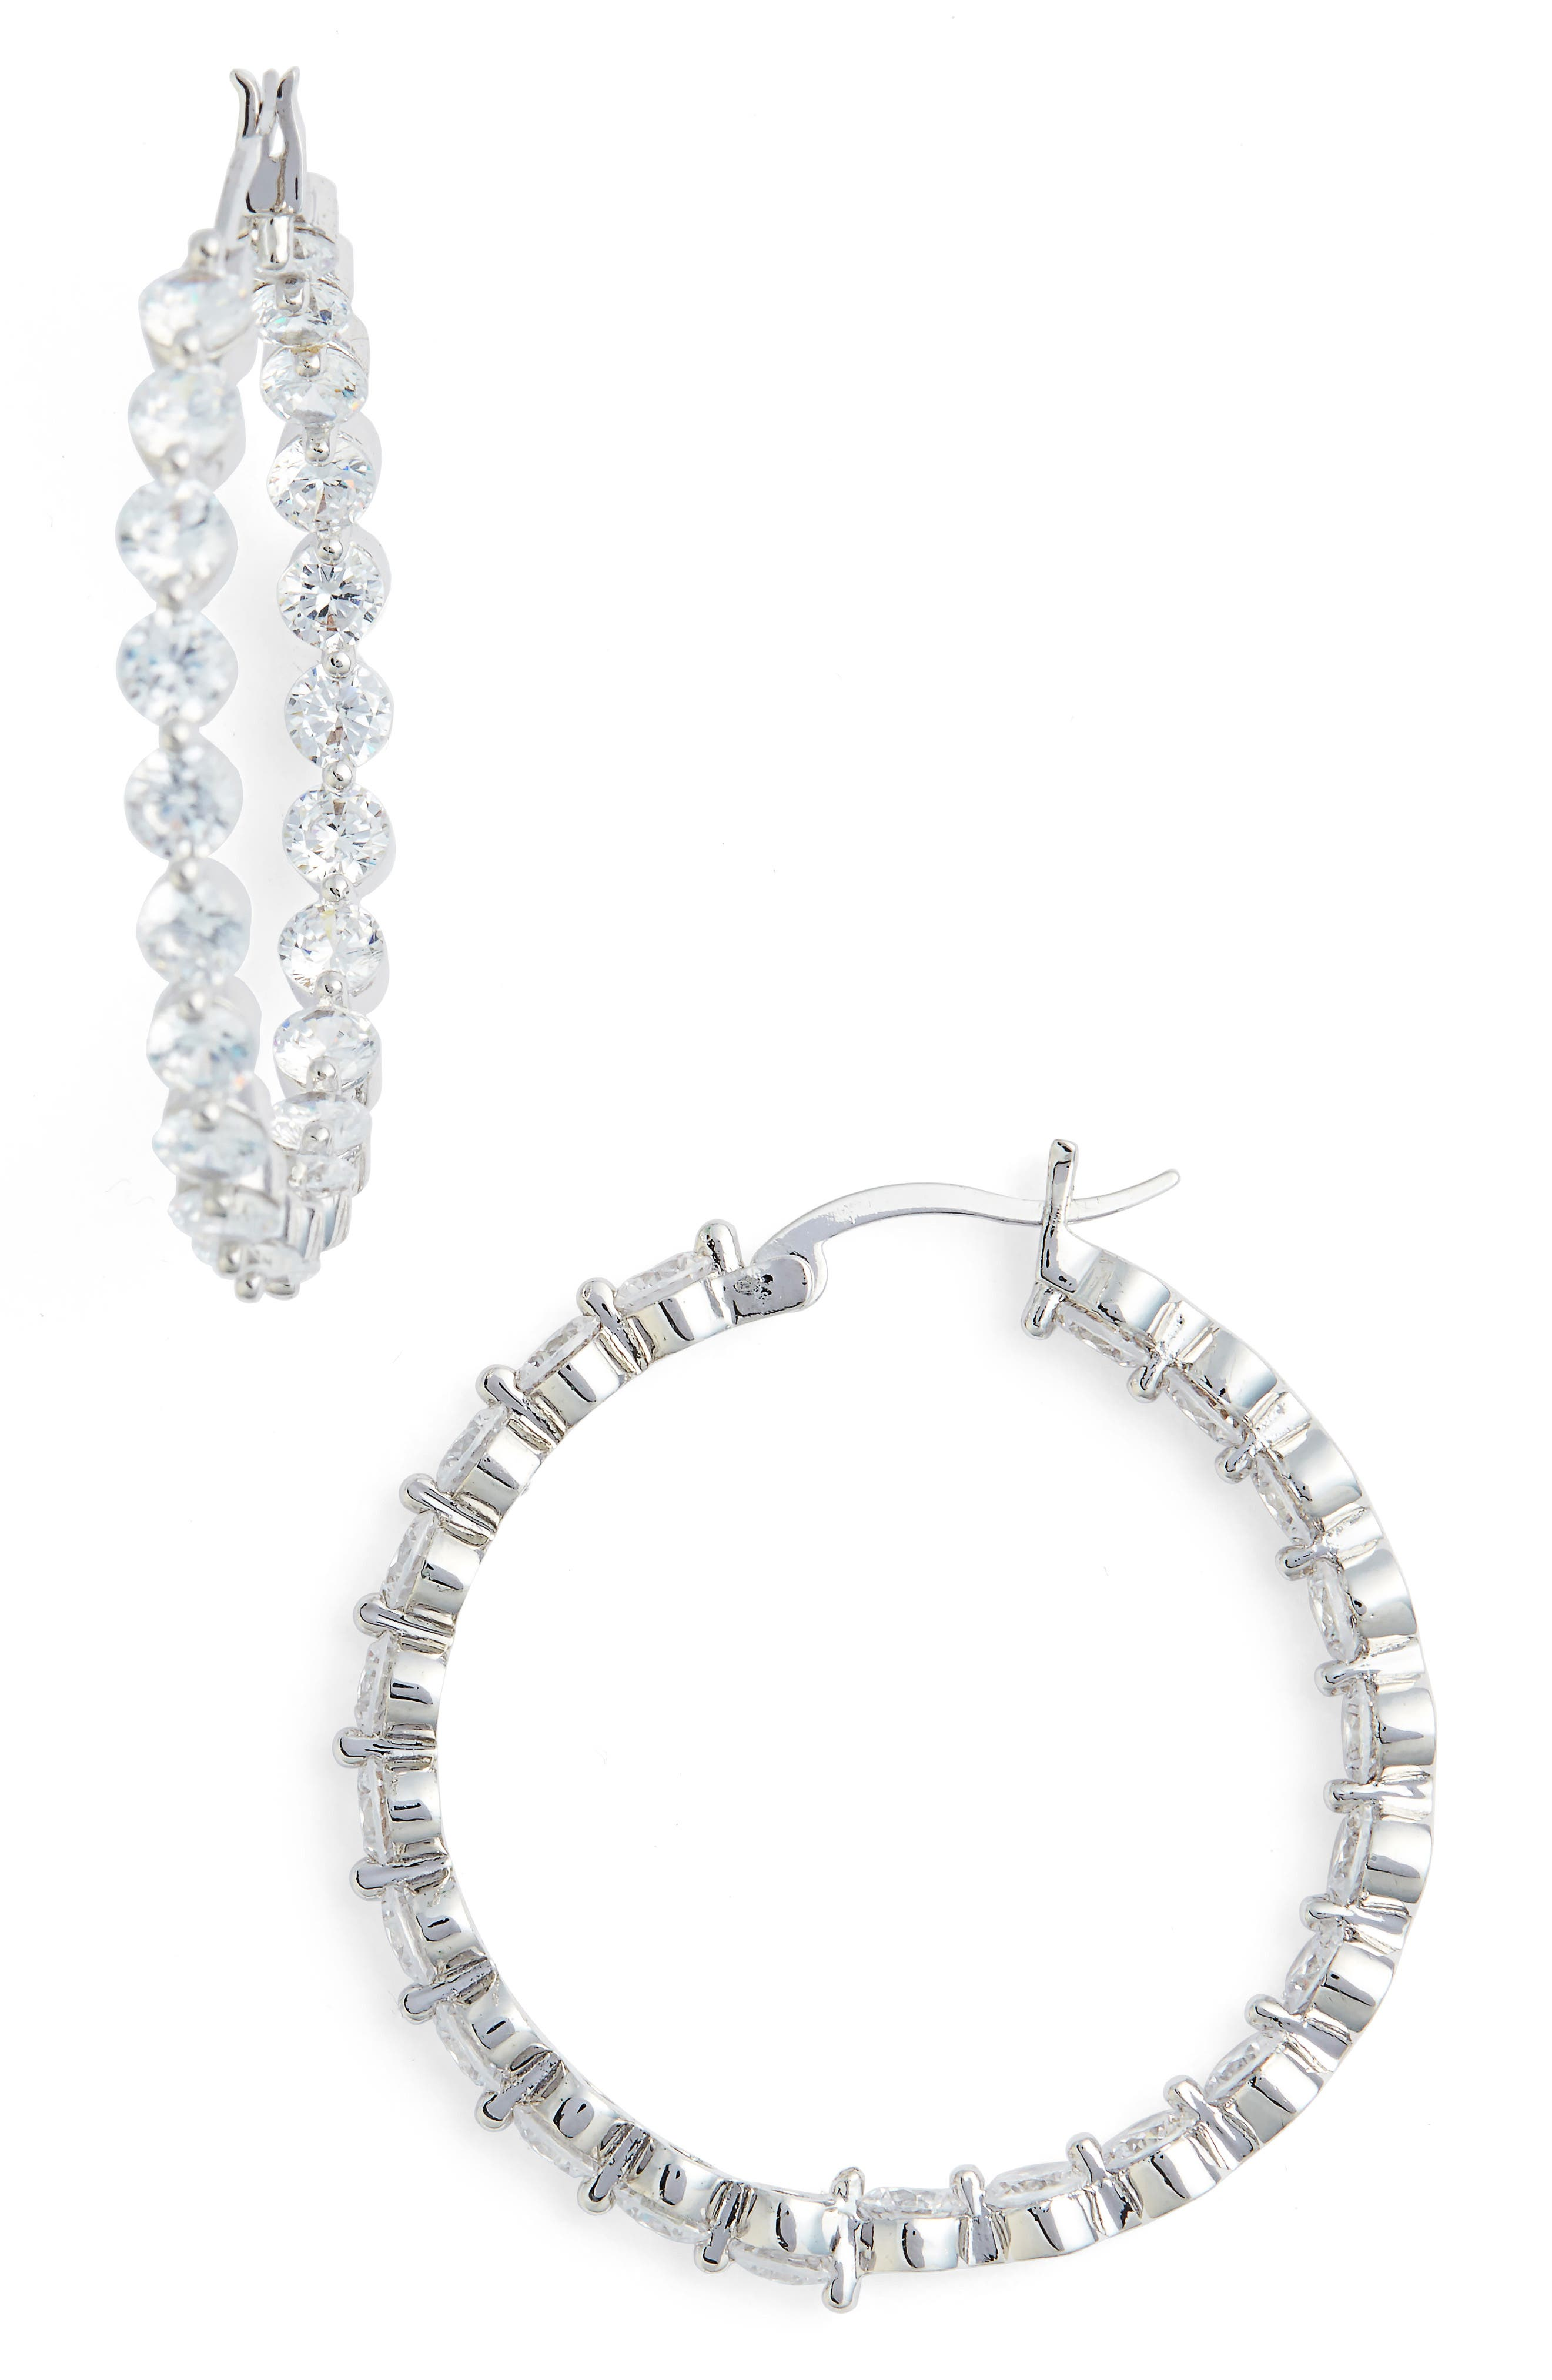 Large Cubic Zirconia Hoop Earrings.,                             Main thumbnail 1, color,                             Silver/ White Cz